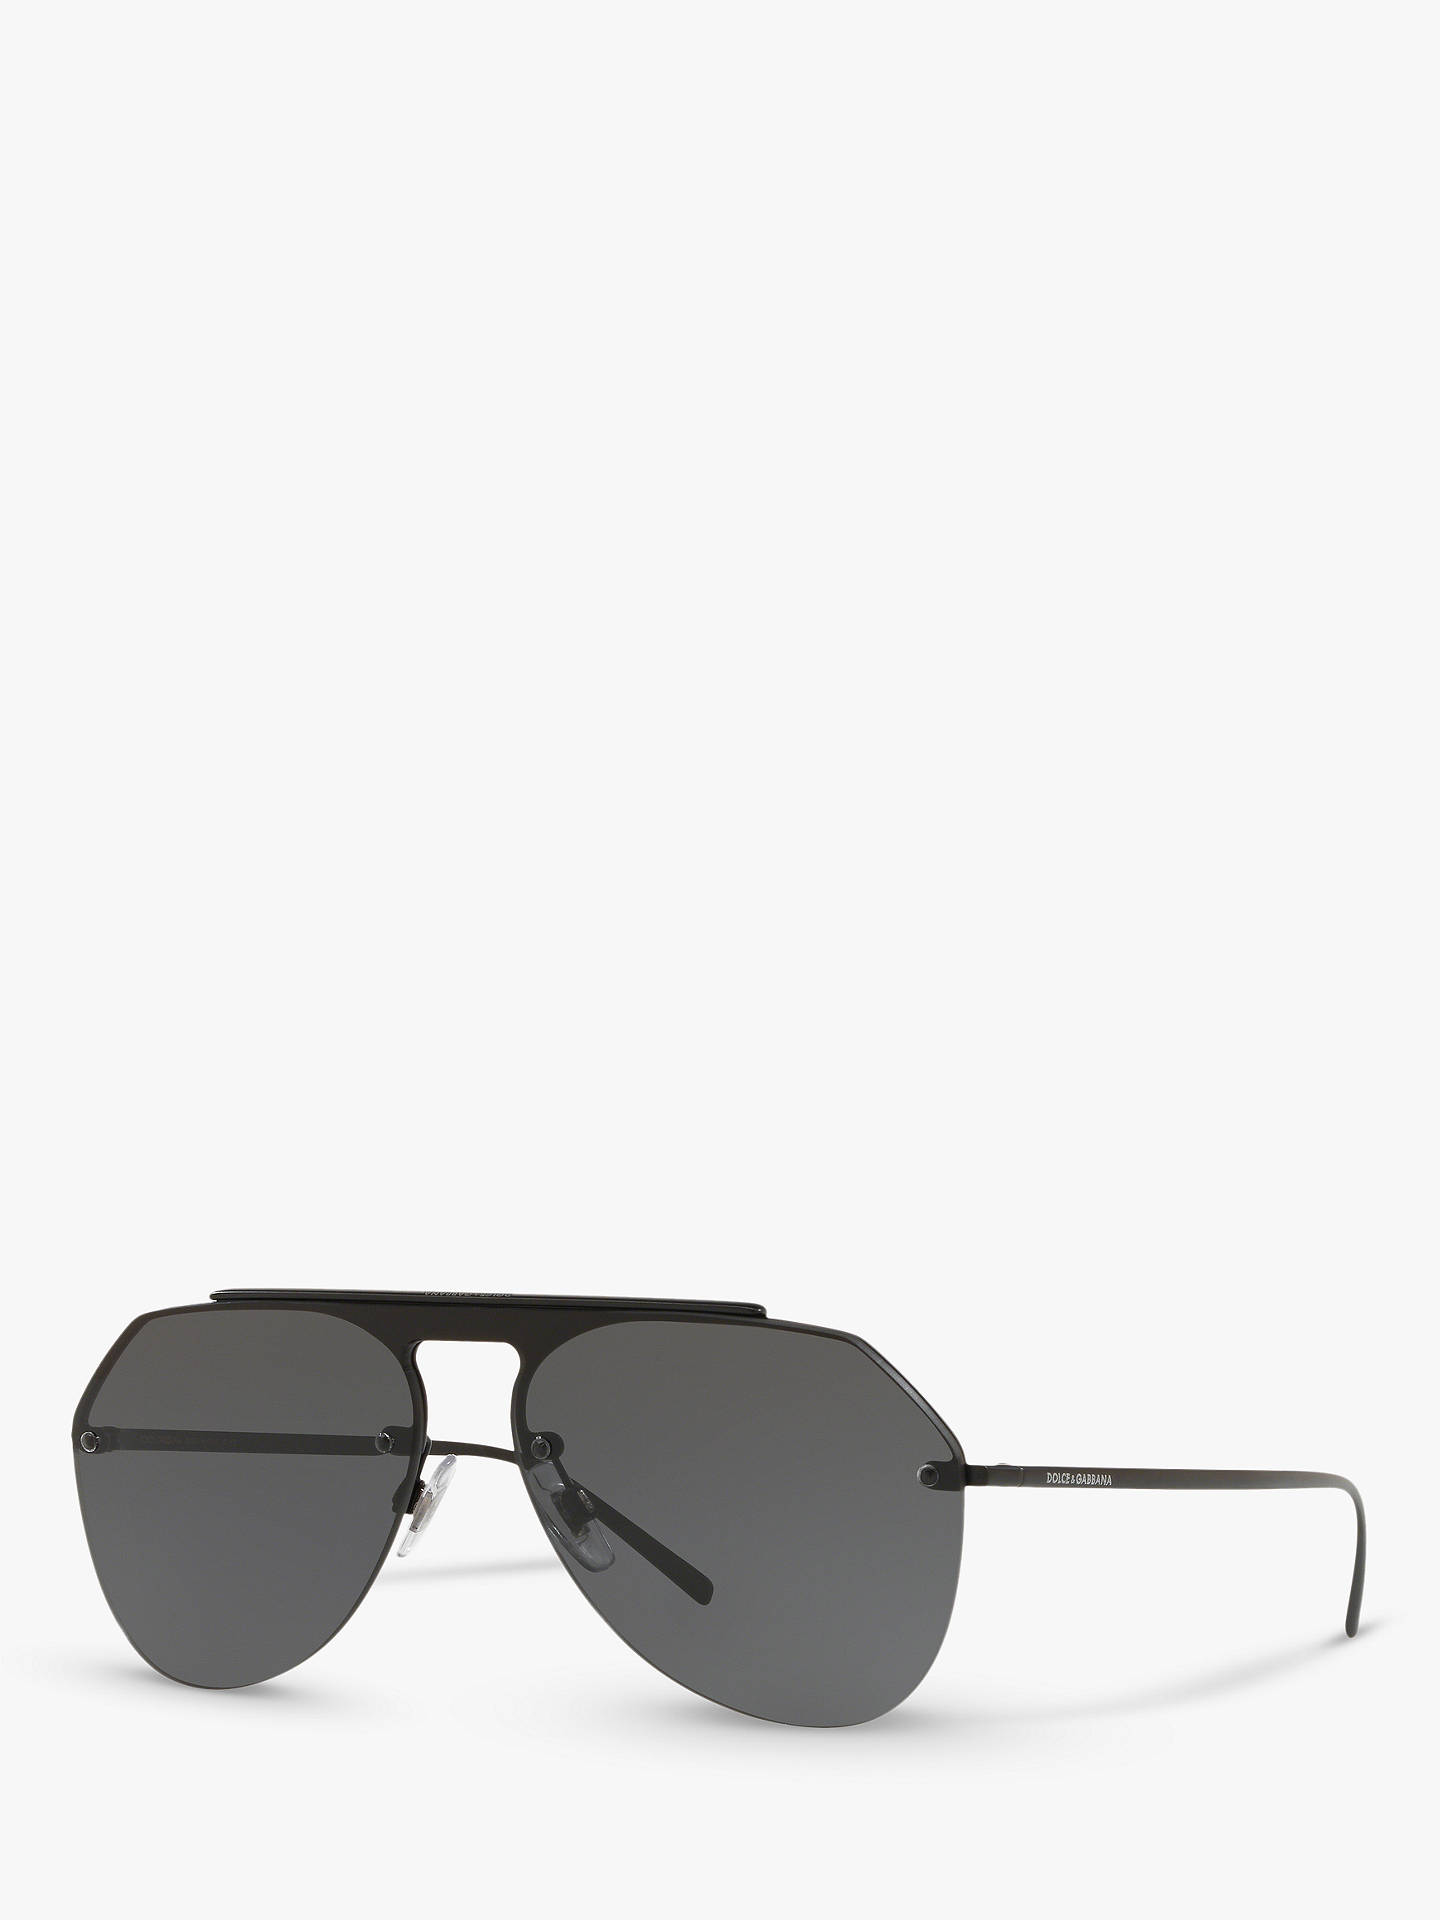 c4e272e3df3d Dolce   Gabbana DG2213 Men s Aviator Sunglasses at John Lewis   Partners